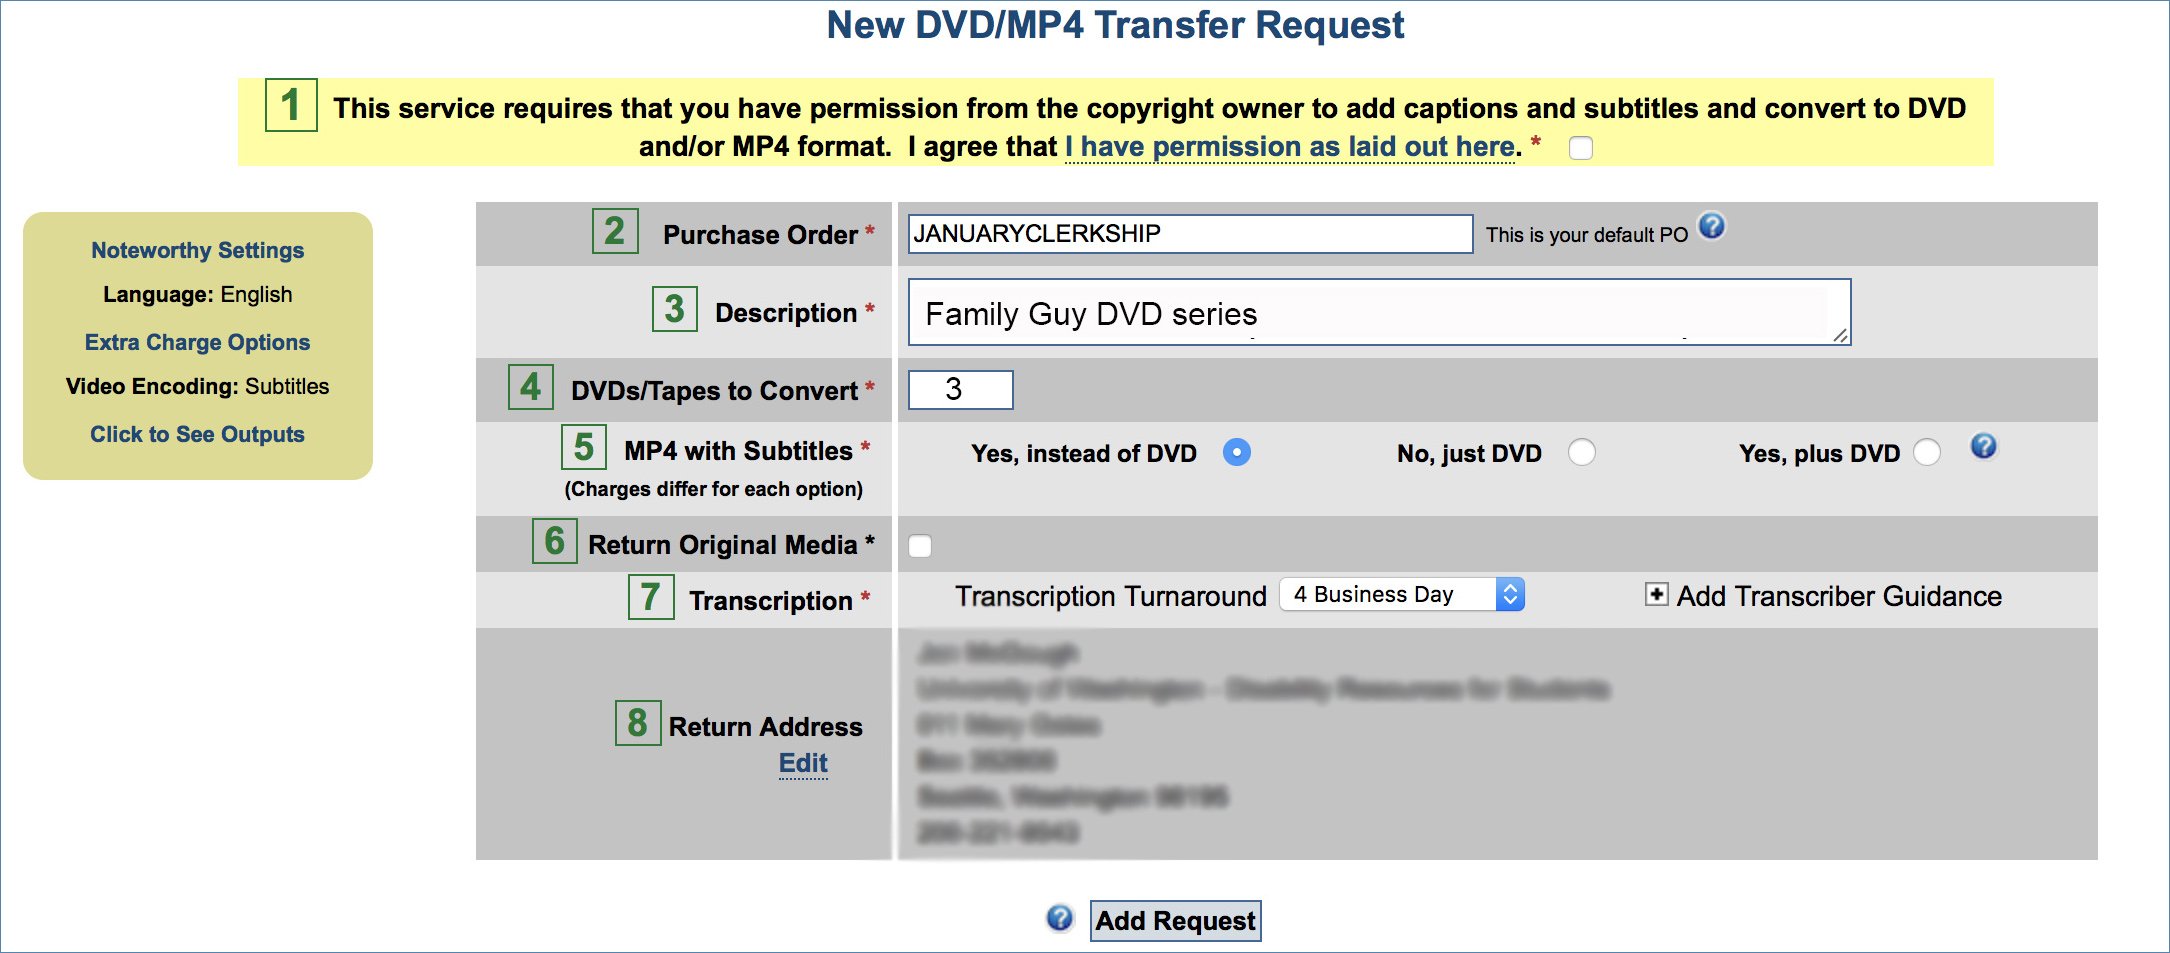 Image of the DVD/MP4 Transfer request page